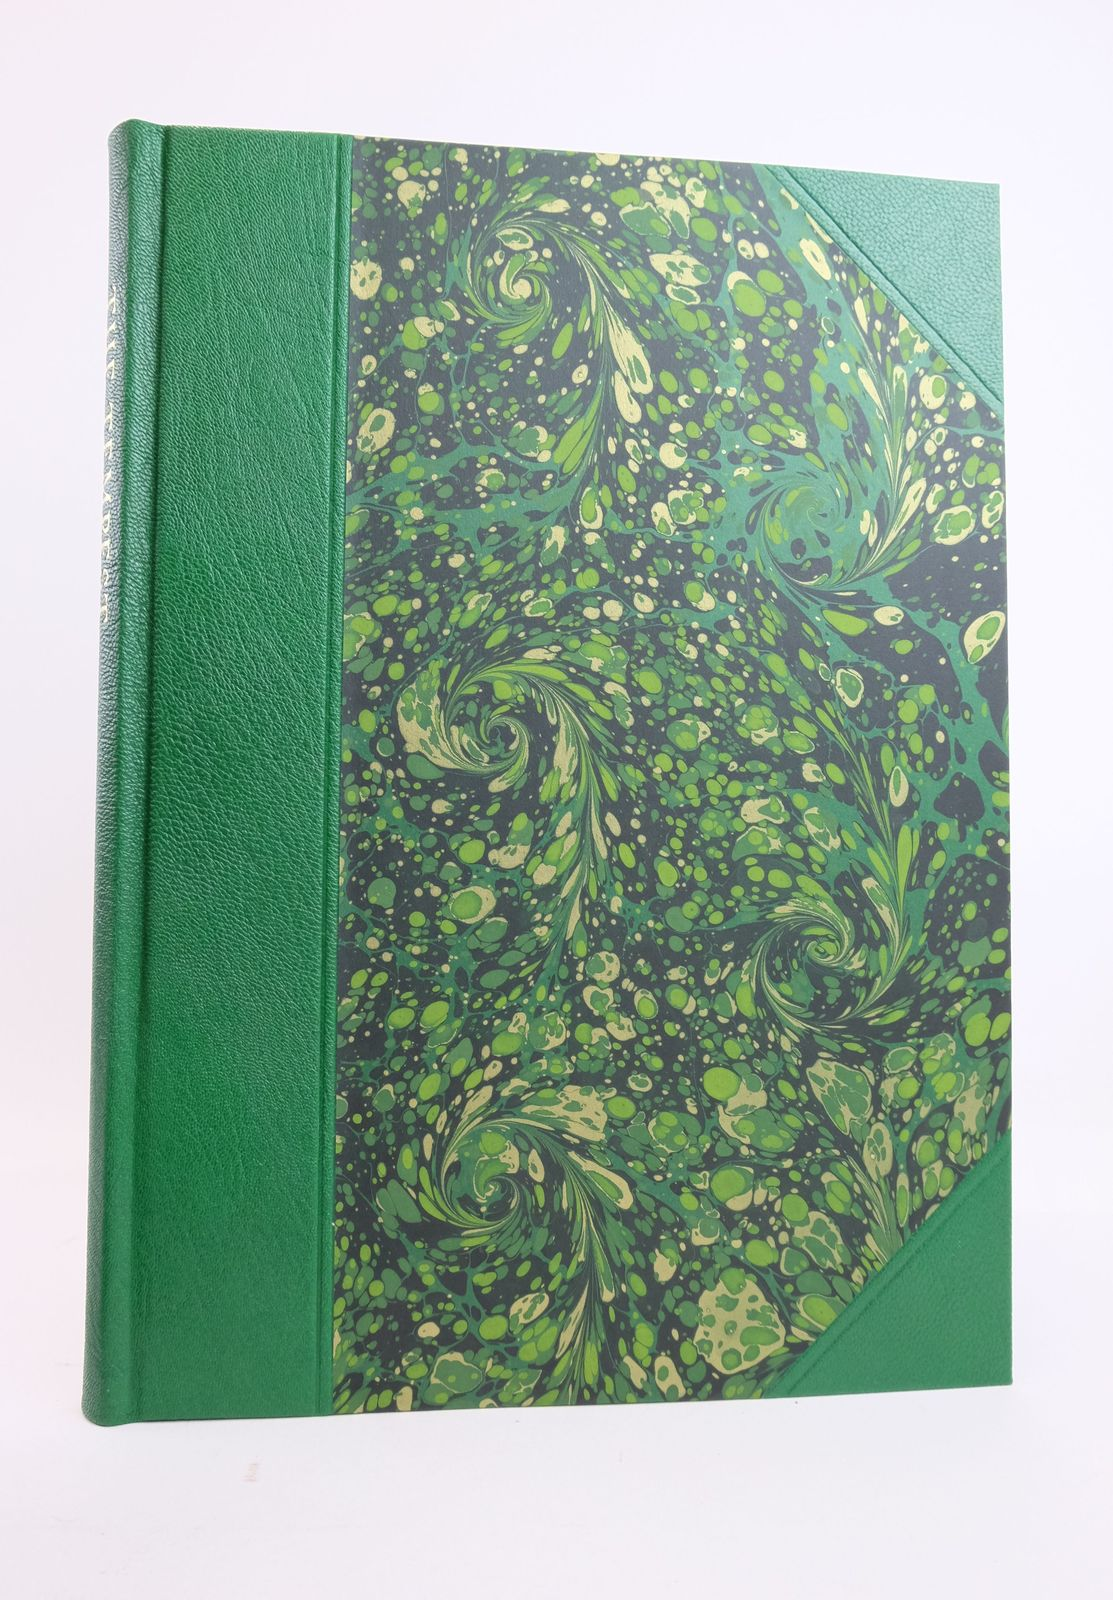 Photo of THE TEMPEST (THE LETTERPRESS SHAKESPEARE) written by Shakespeare, William Orgel, Stephen published by Folio Society (STOCK CODE: 1821593)  for sale by Stella & Rose's Books